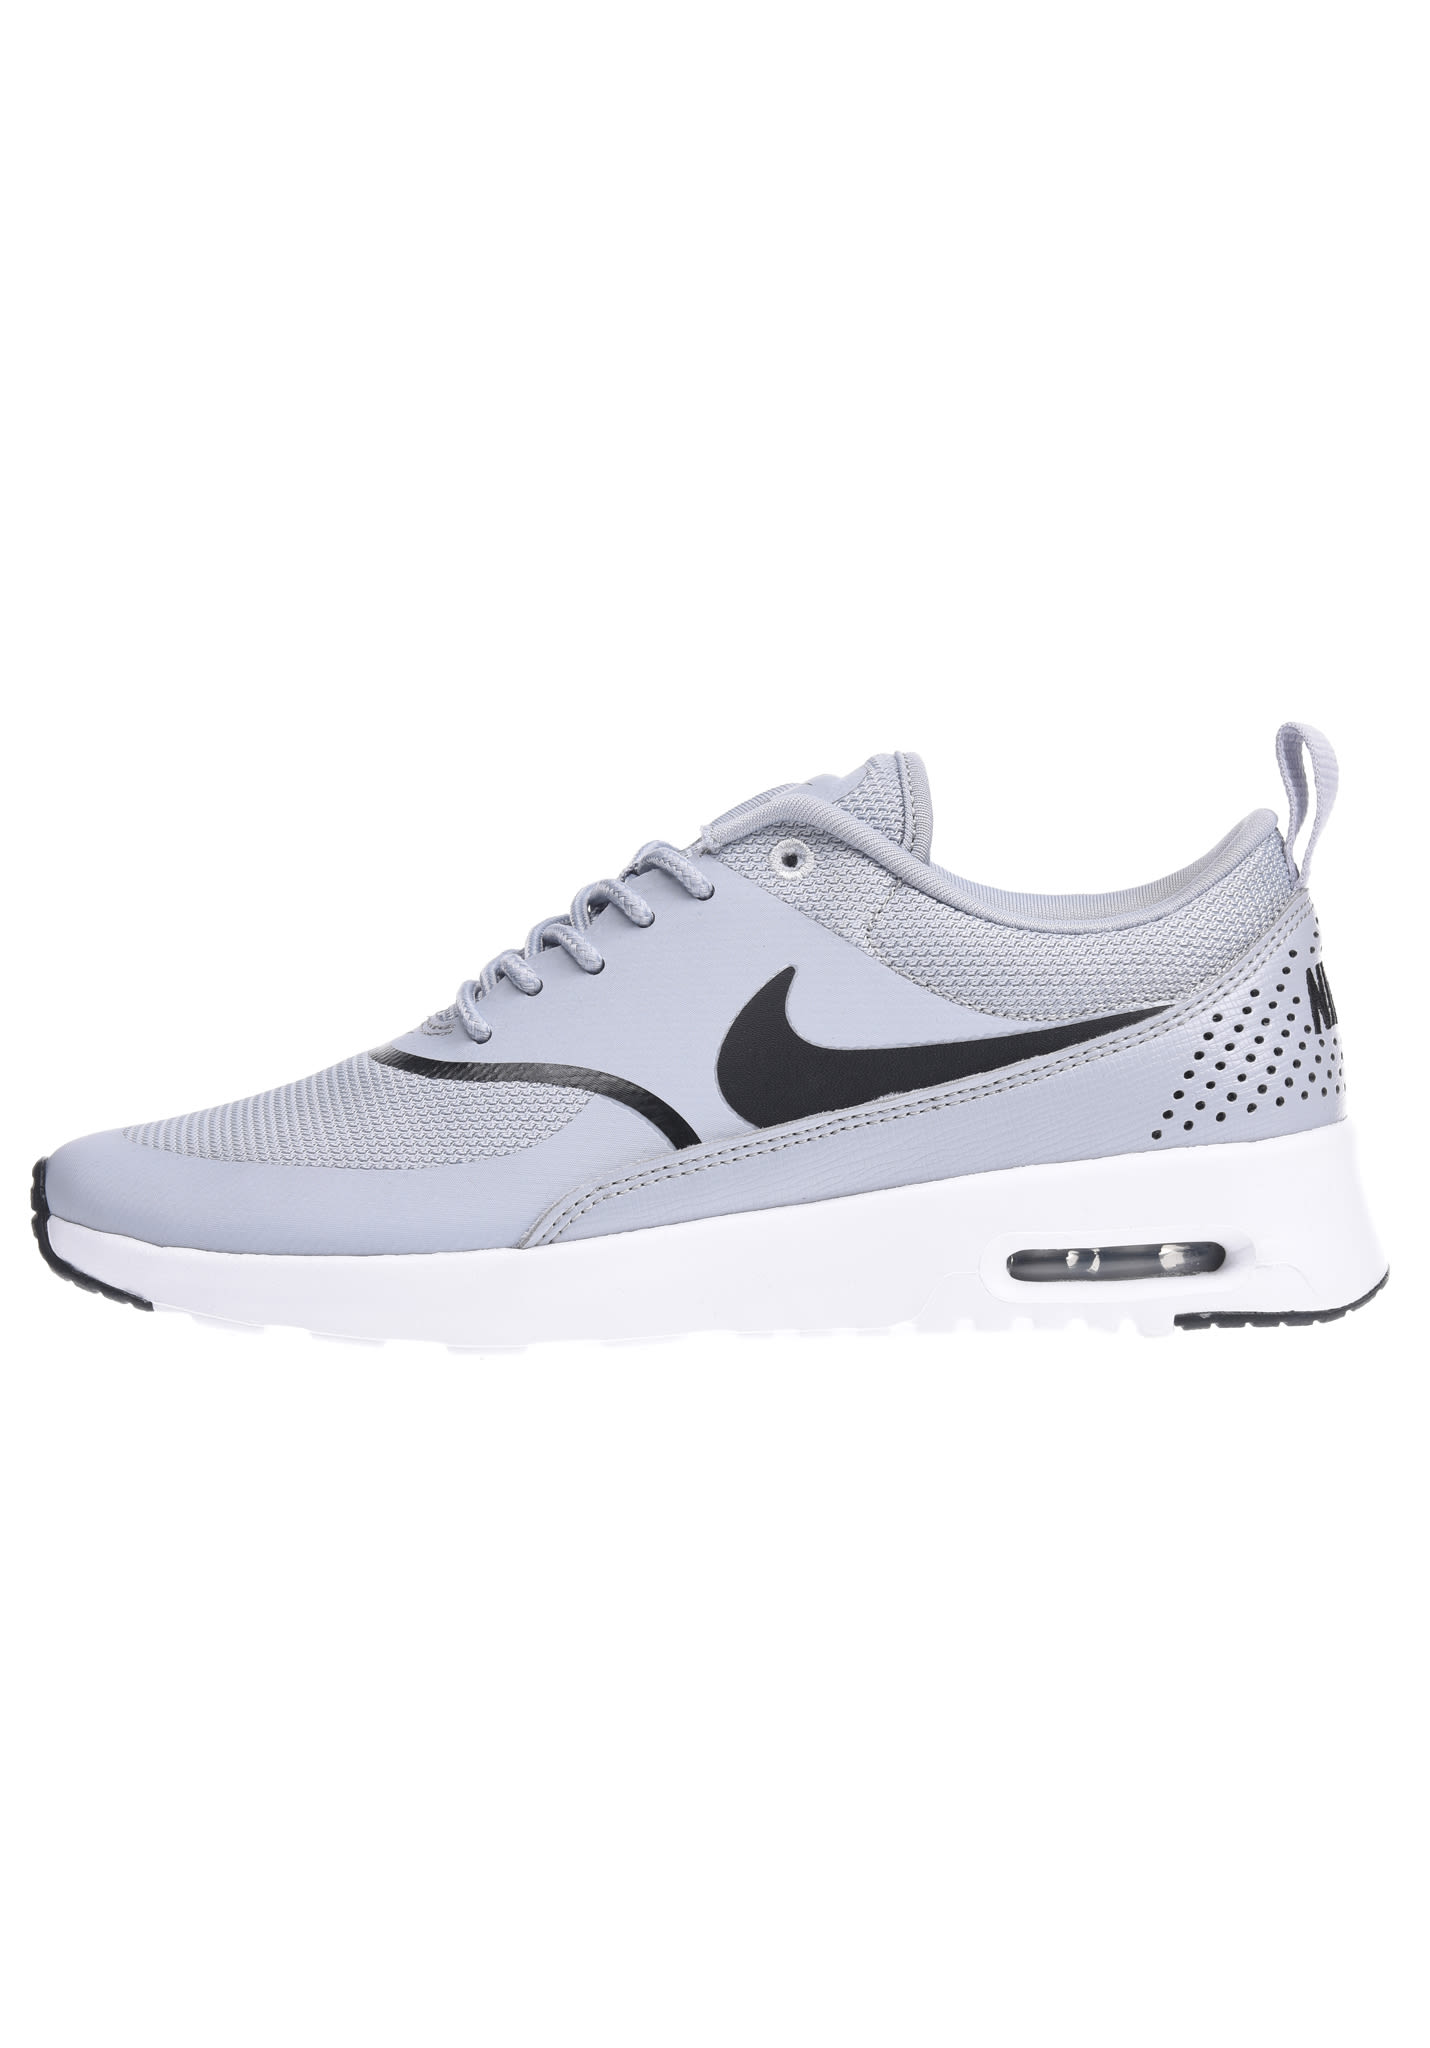 hot sale online f6851 17b81 NIKE SPORTSWEAR Air Max Thea - Sneaker für Damen - Grau - Planet Sports